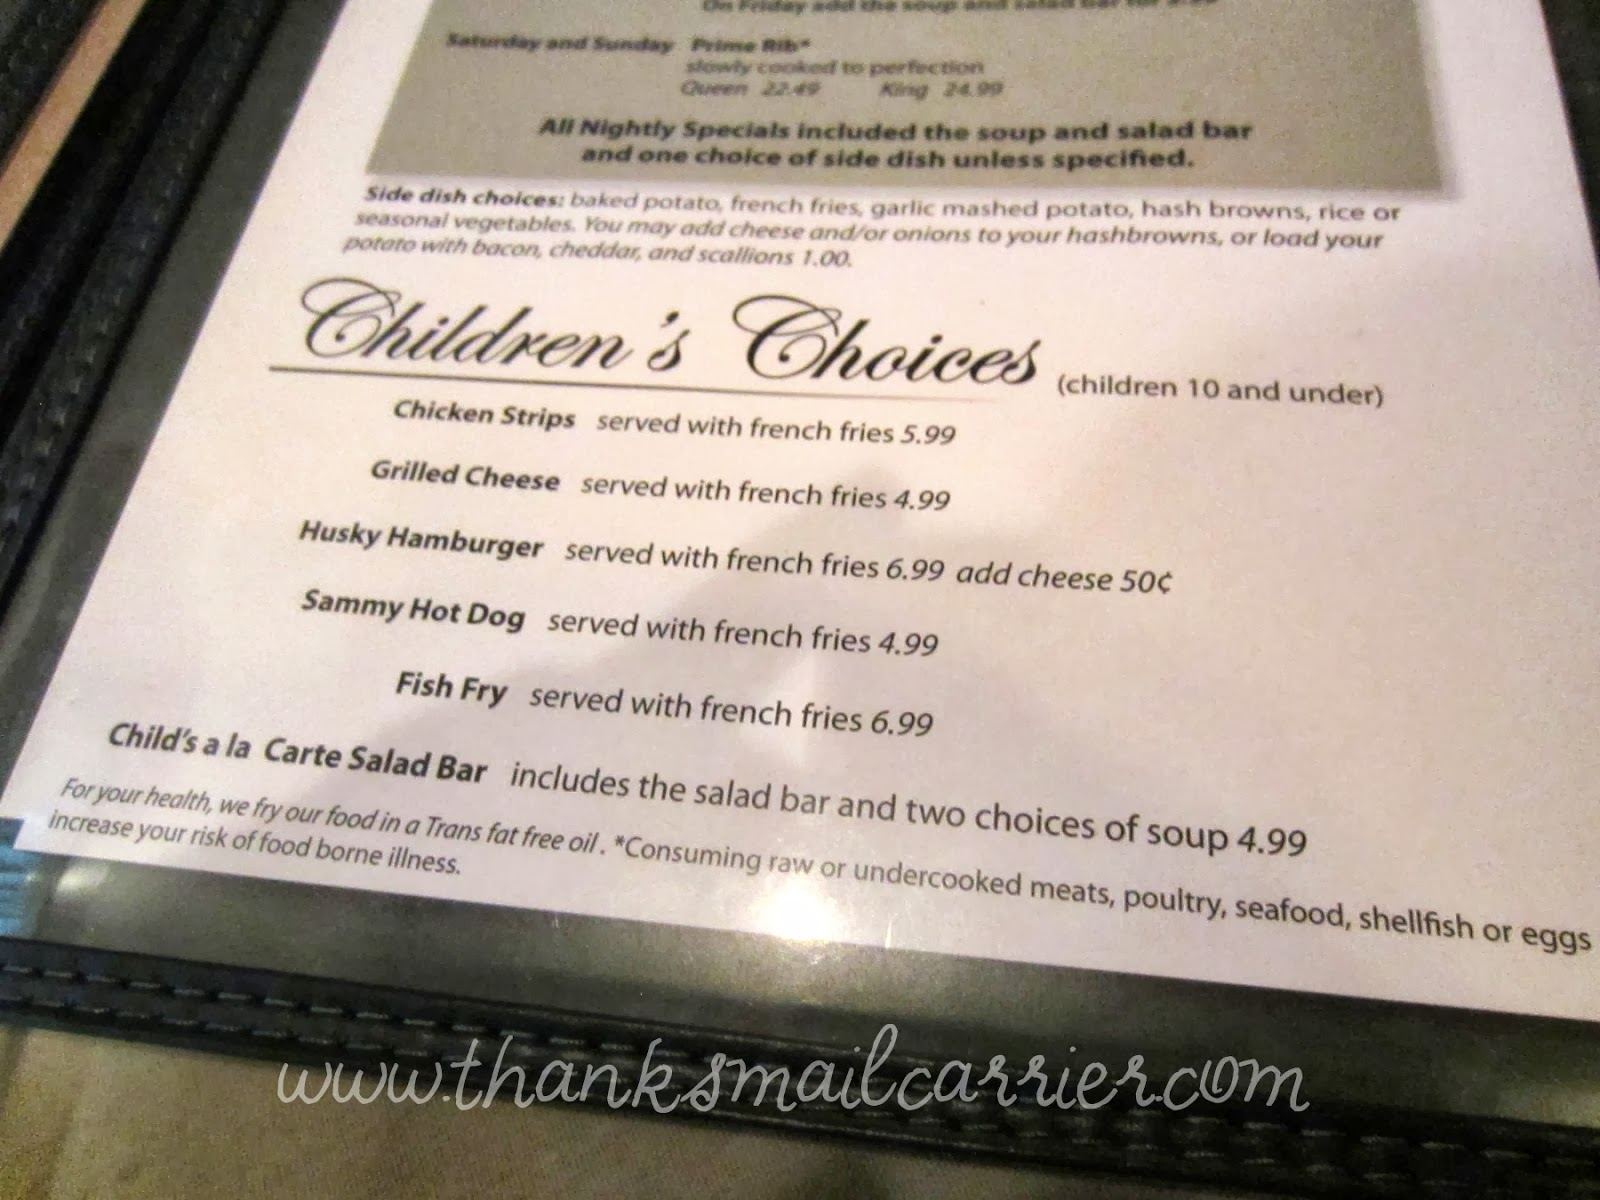 fitzgerald's children's menu